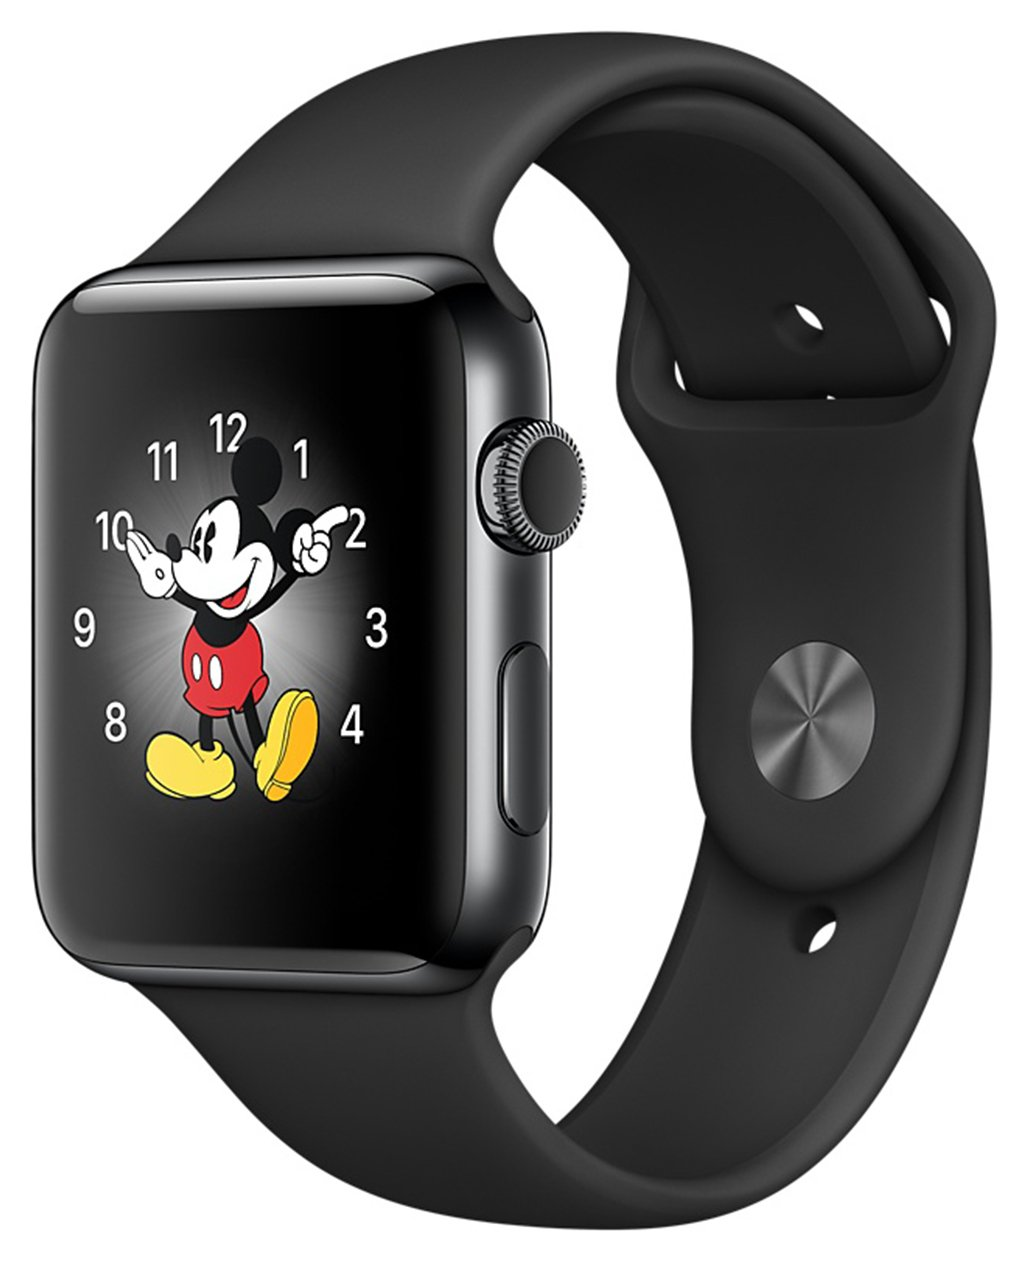 Apple Watch S2 38mm Space Black SSteel wSpace Black Band. cheapest retail price